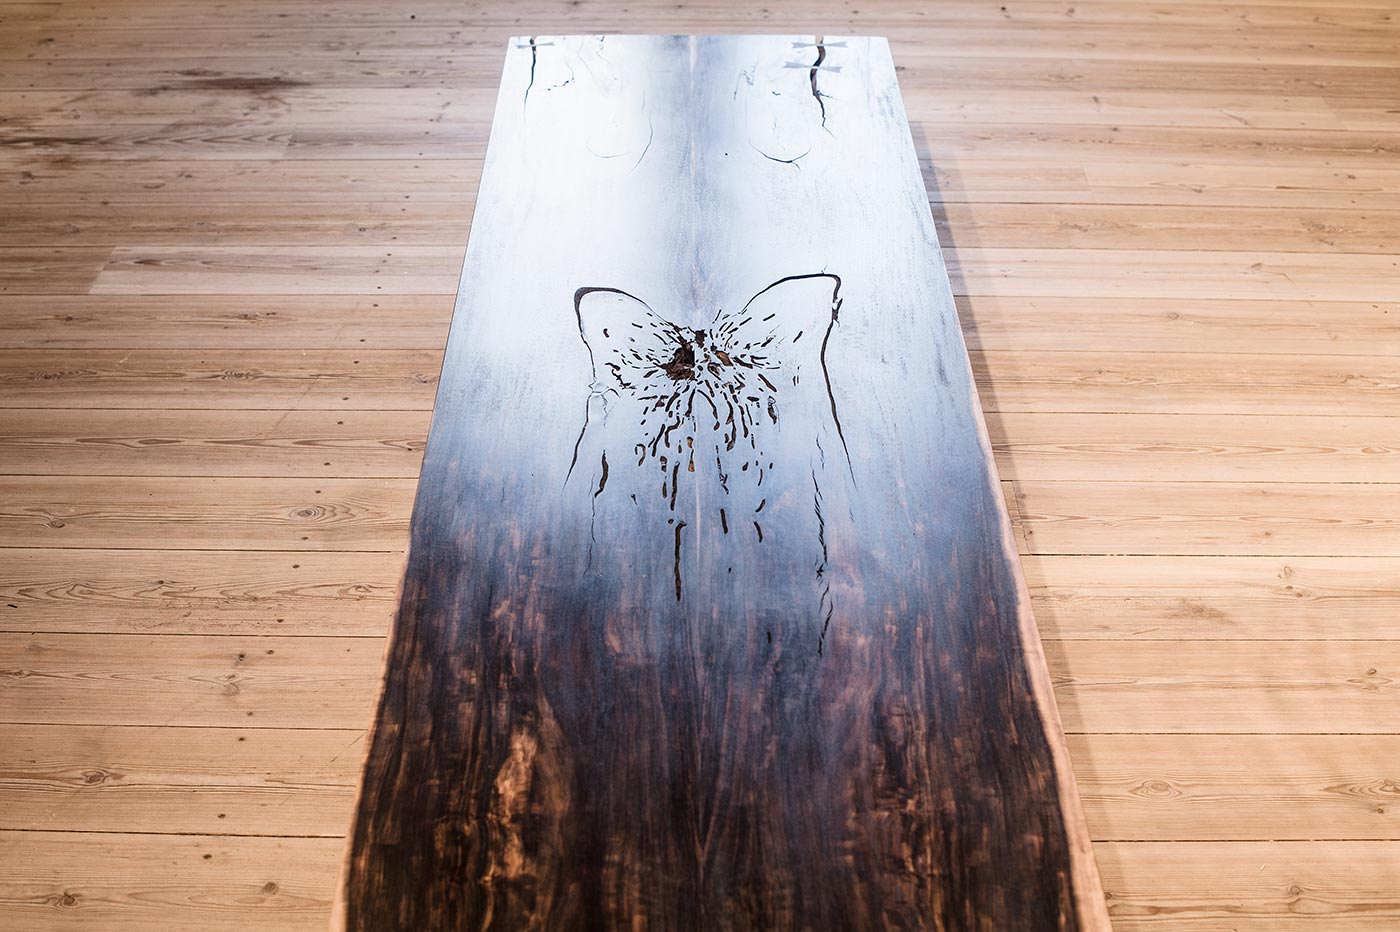 Wood surface with butterfly joints: